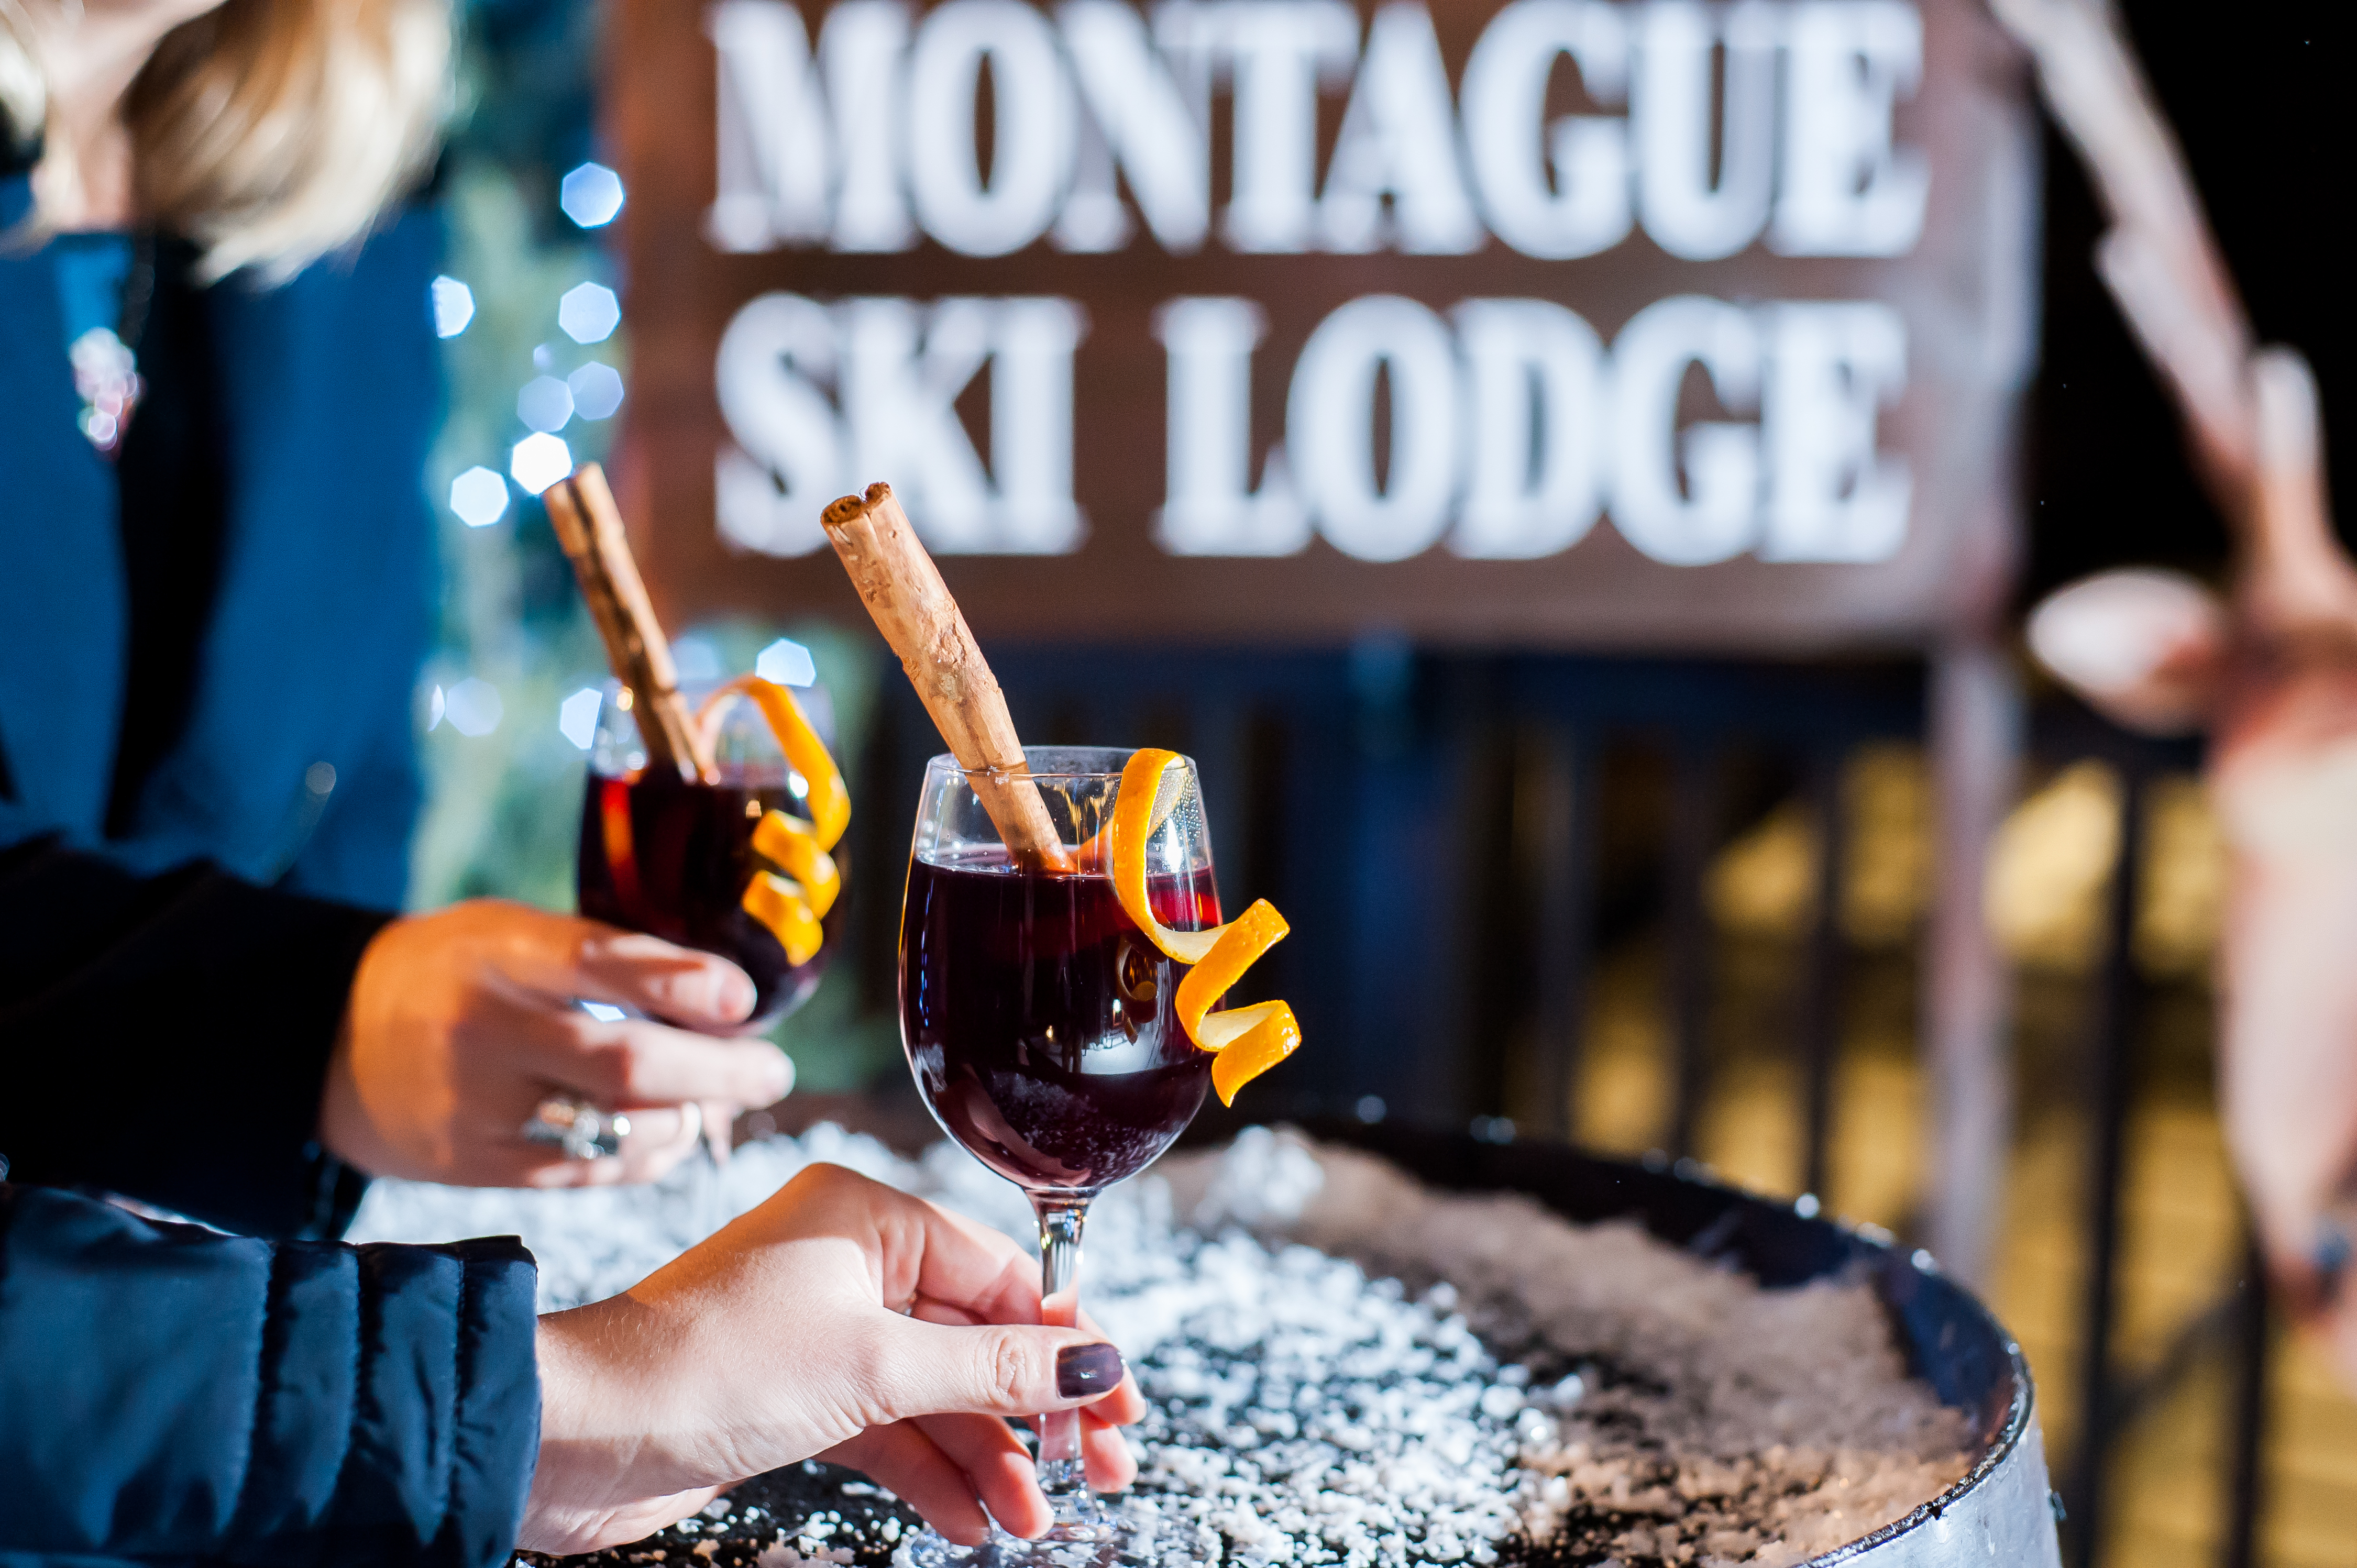 The Montague on the Gardens Ski Lodge